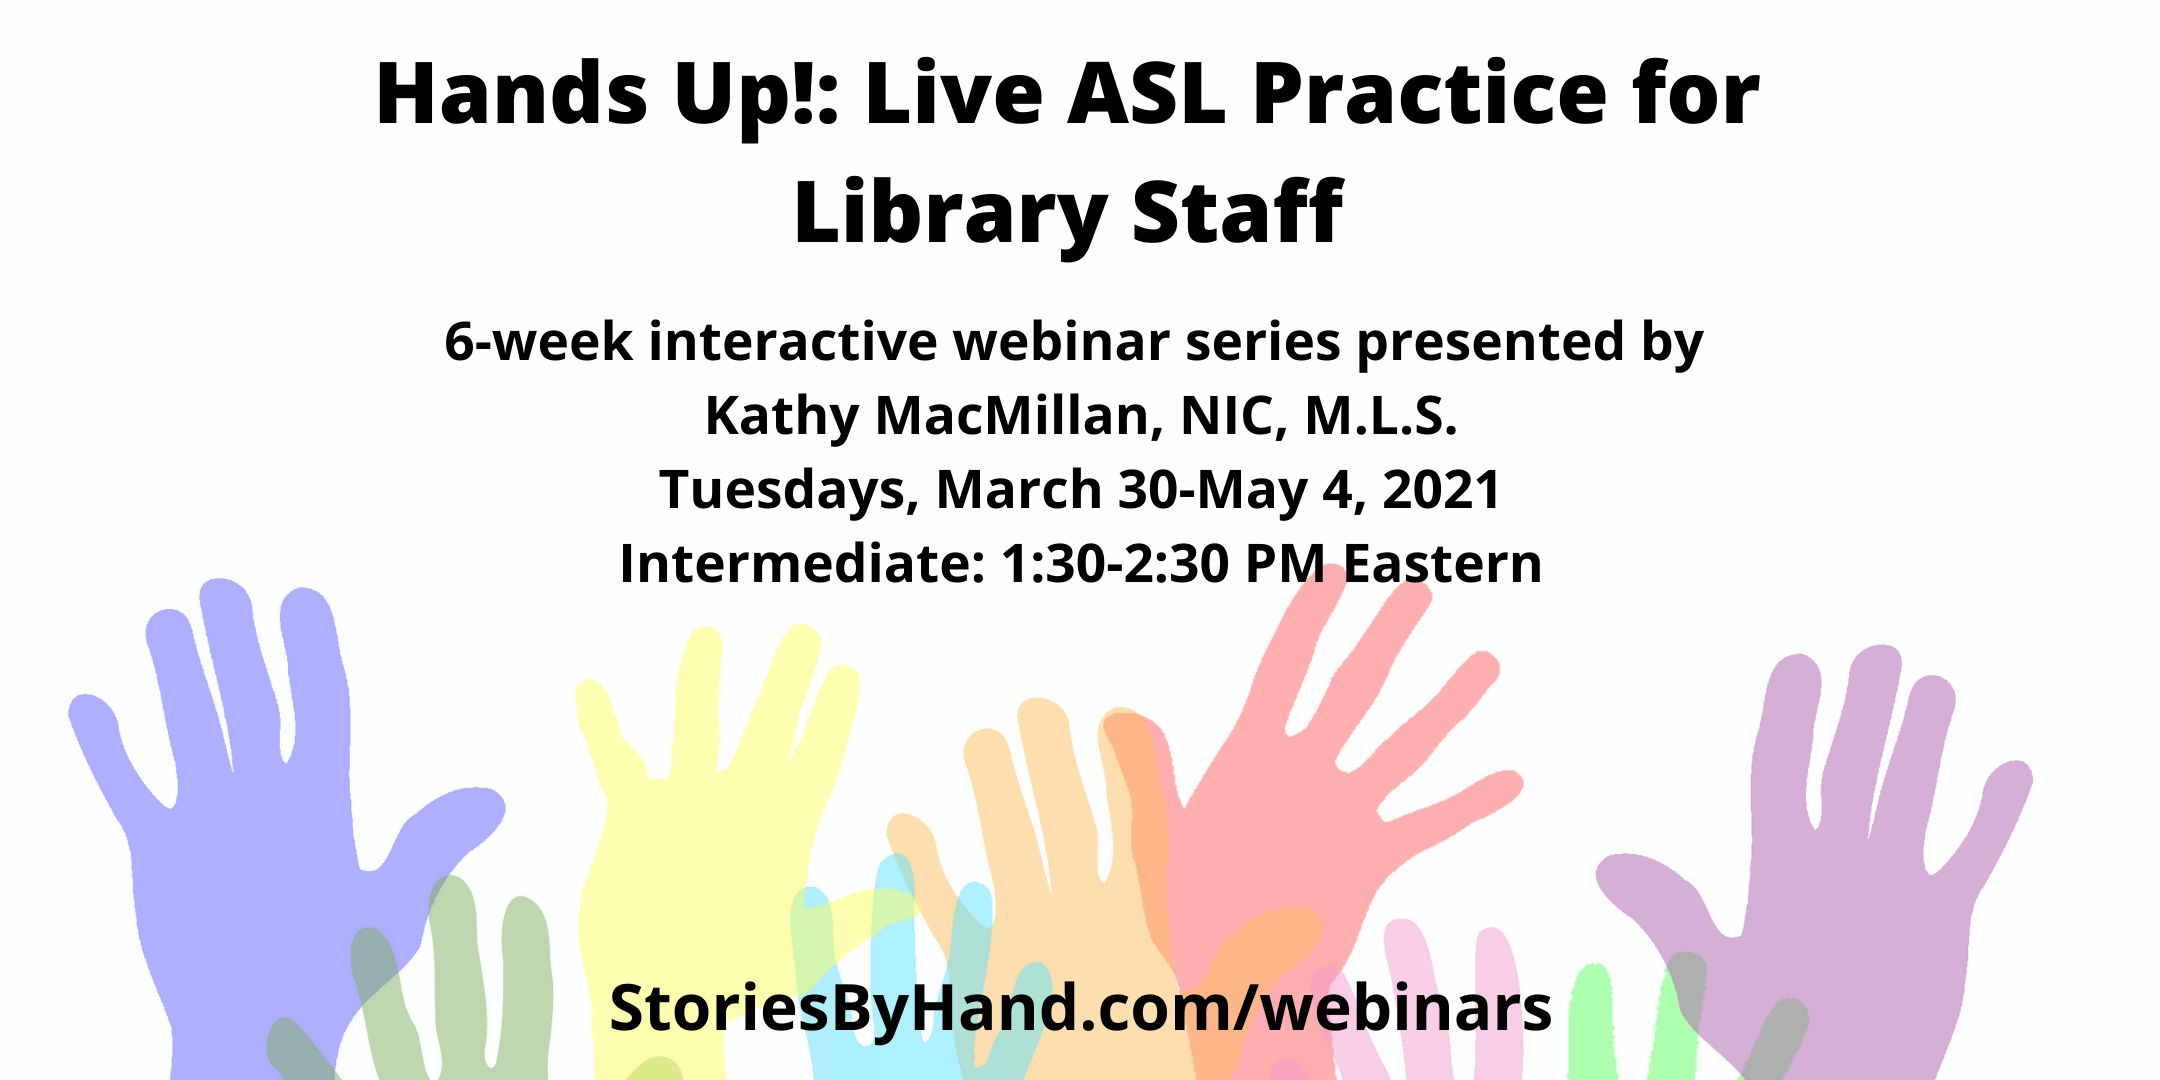 Hands Up: Live ASL Practice for Library Staff | 6-week interactive series presented by Kathy MacMillan, NIC, M.L.S. | Tuesdays, March 30-May 4, 2021 |Intermediate: 1:30-2:30 PM Eastern | StoriesByHand.com/webinars